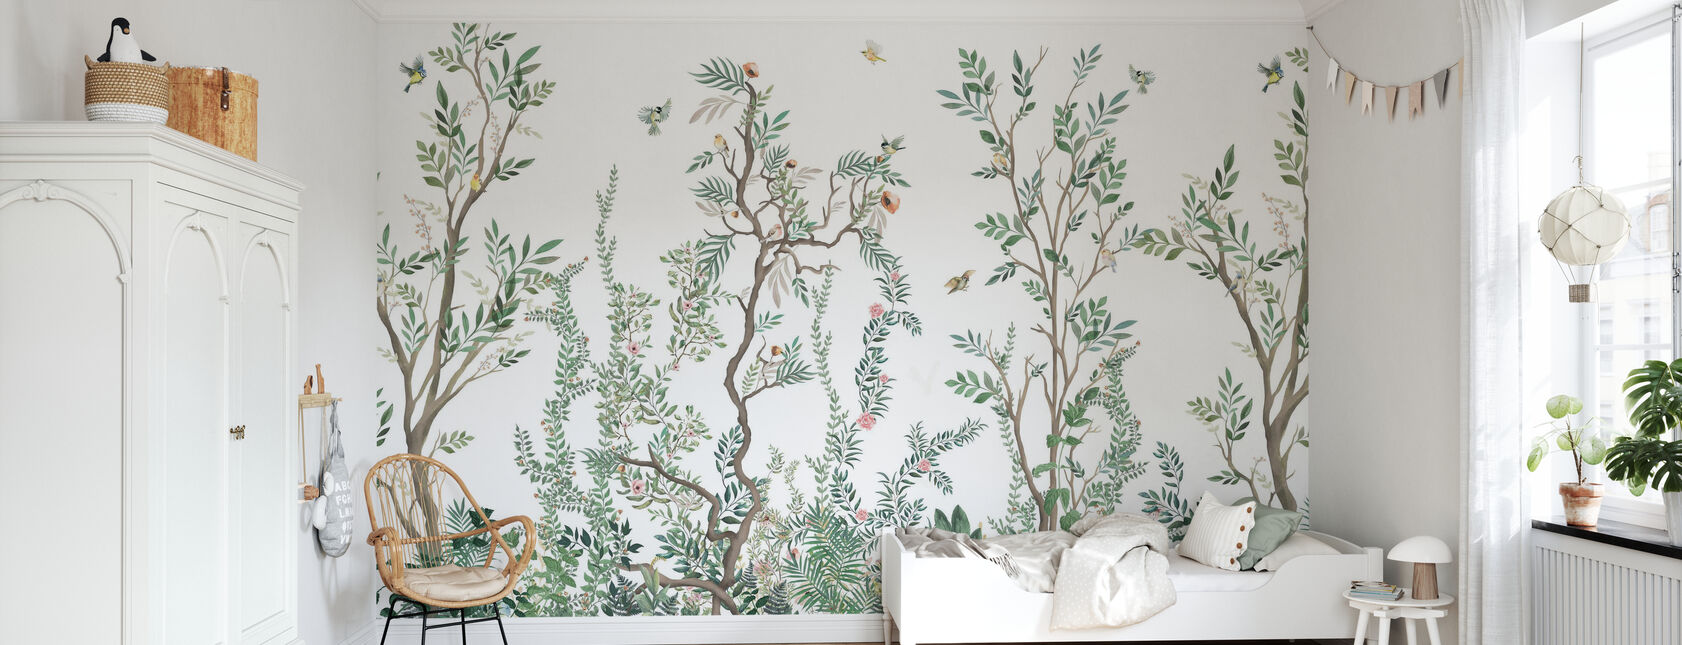 Woodlands - Wallpaper - Kids Room